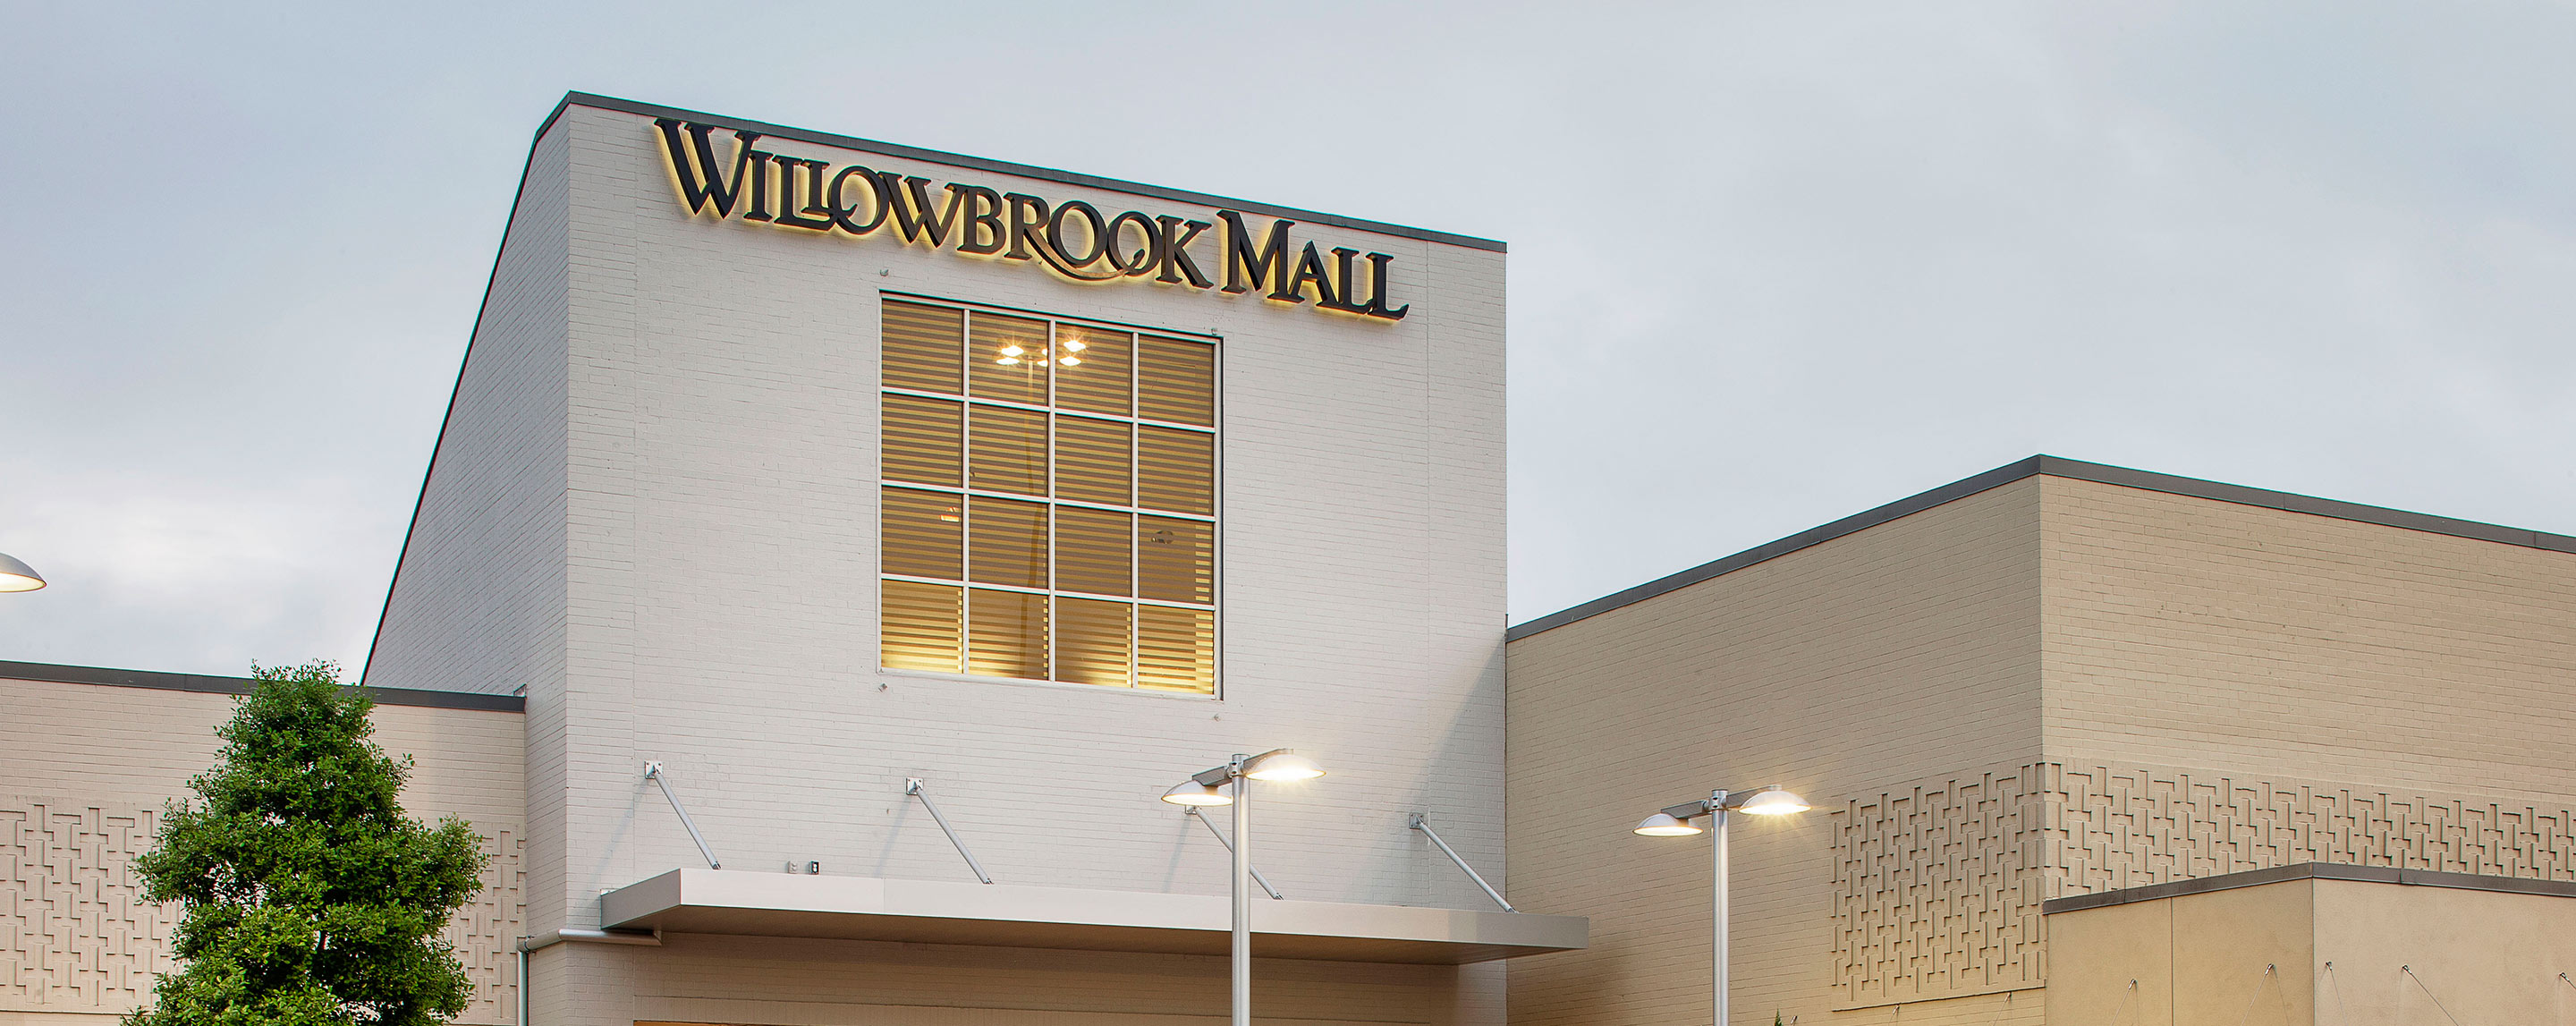 At dusk, the entrance to Willowbrook Mall is lit.